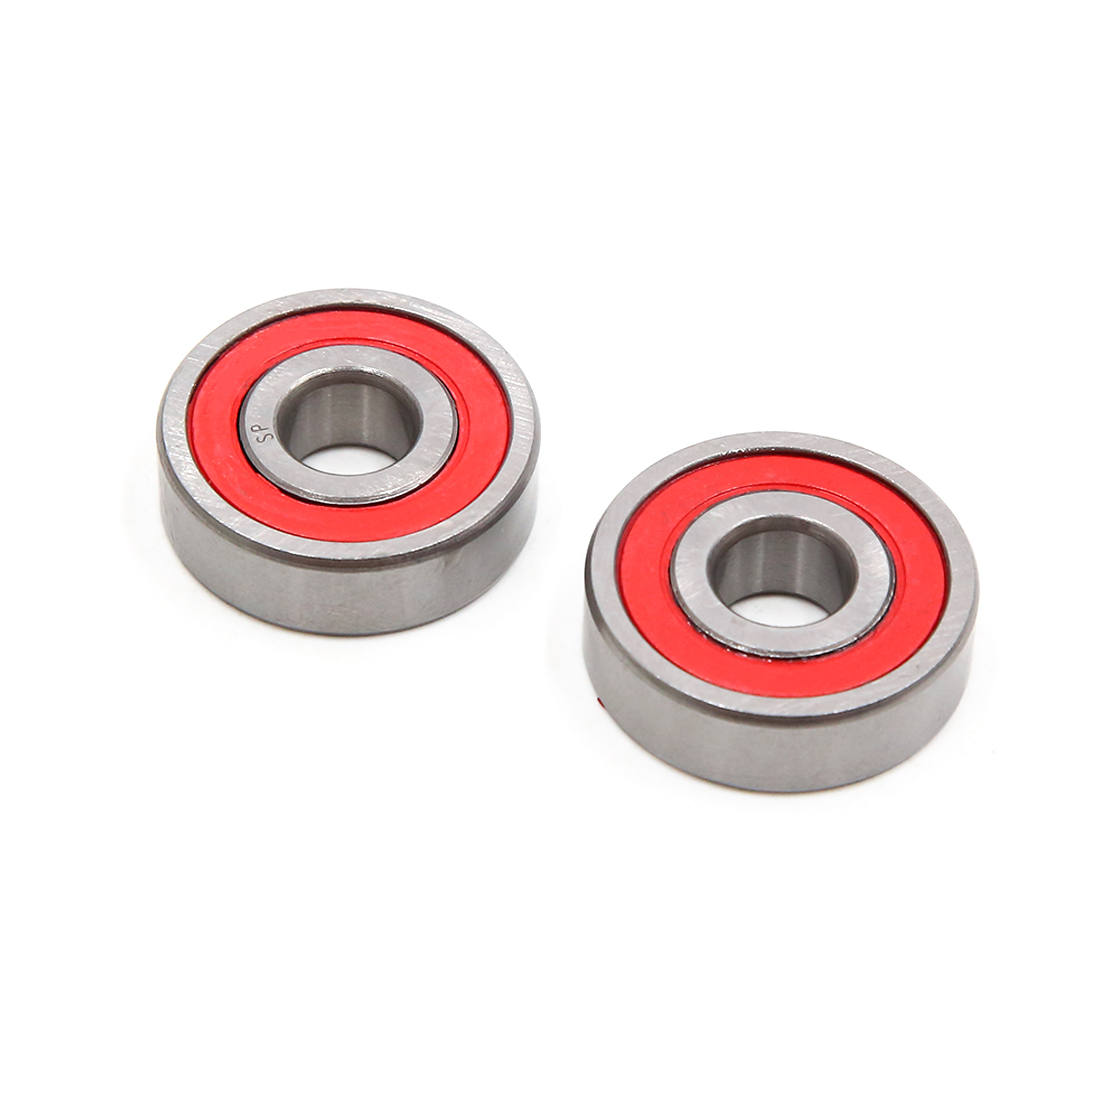 2pcs 6200-2RS Scooter Motorcycle Sealed Deep Groove Ball Bearing 30 x 10 x 9mm